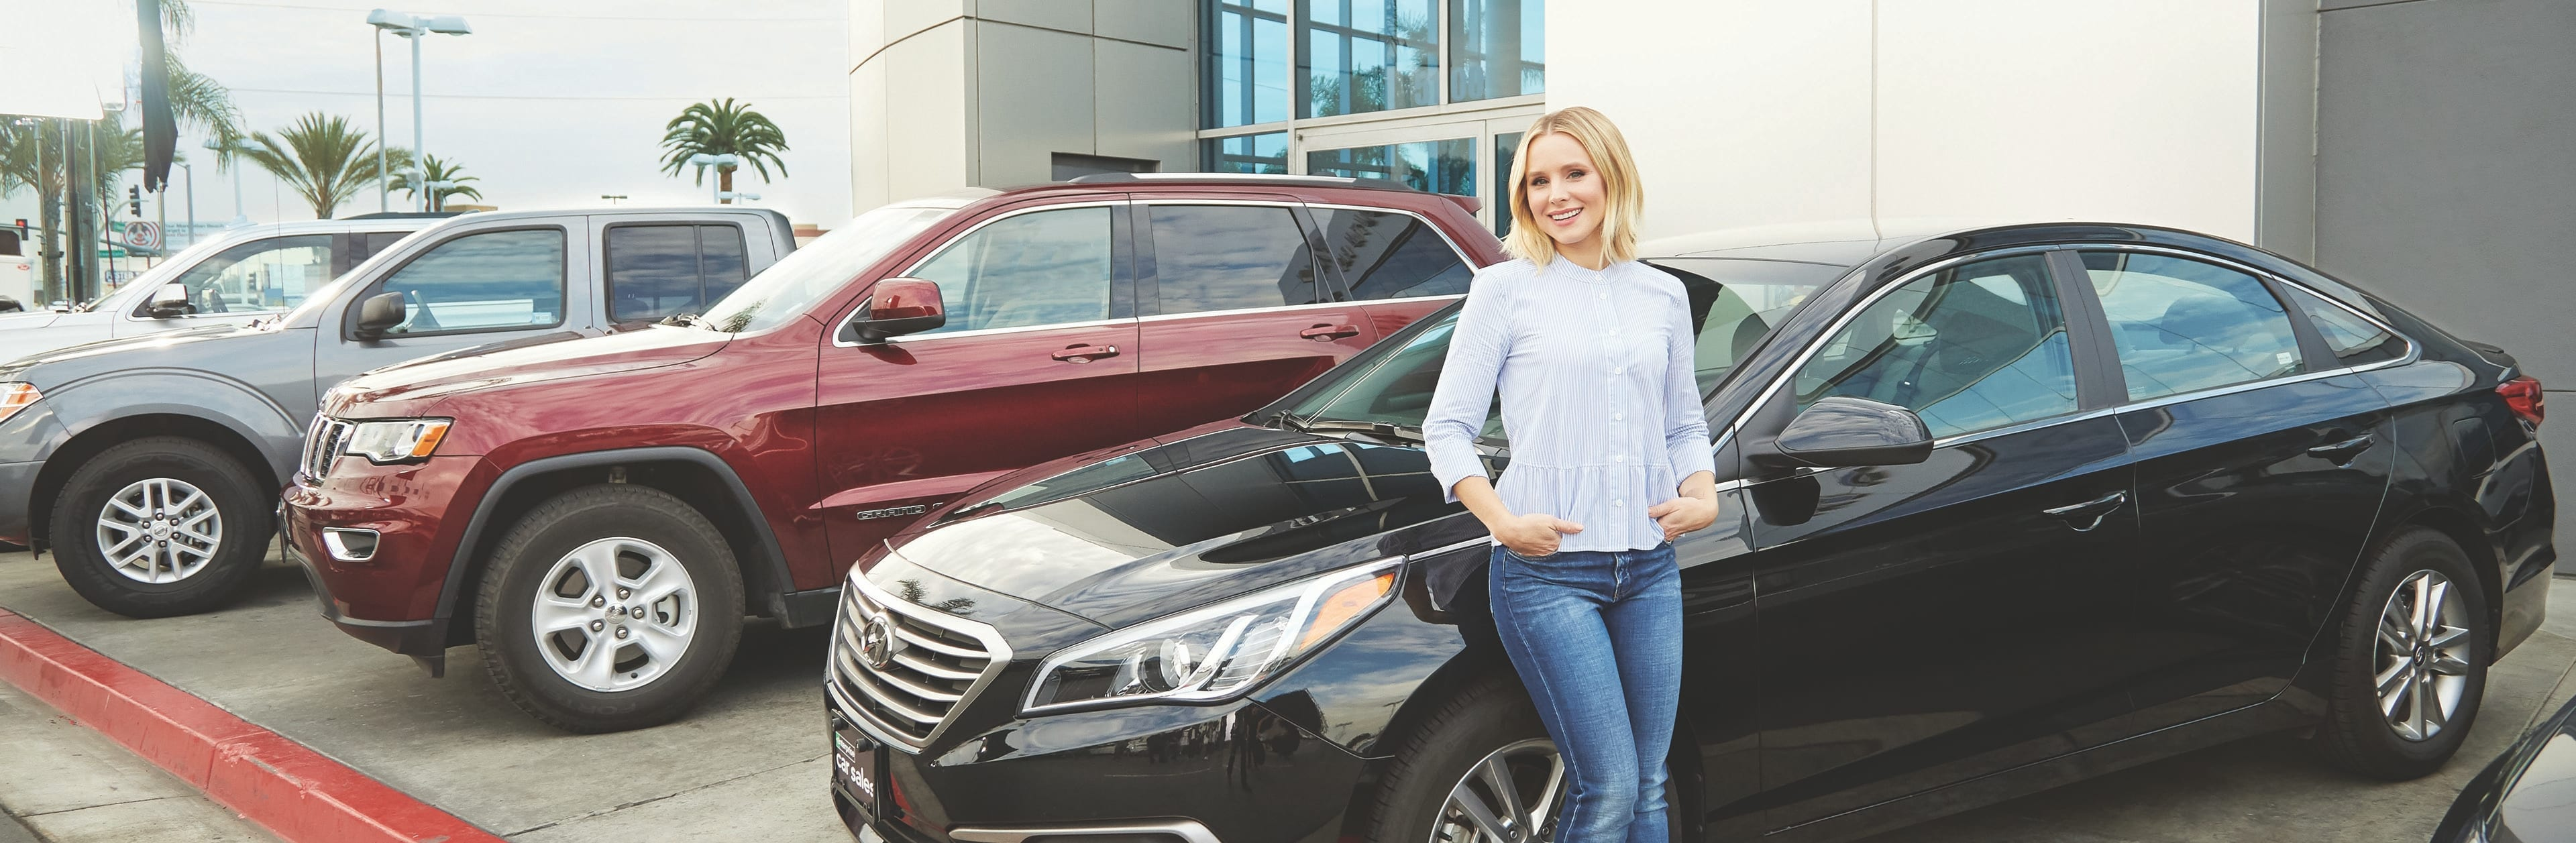 Used Cars for Sale Fresh Learn More About Enterprise Certified Used Cars